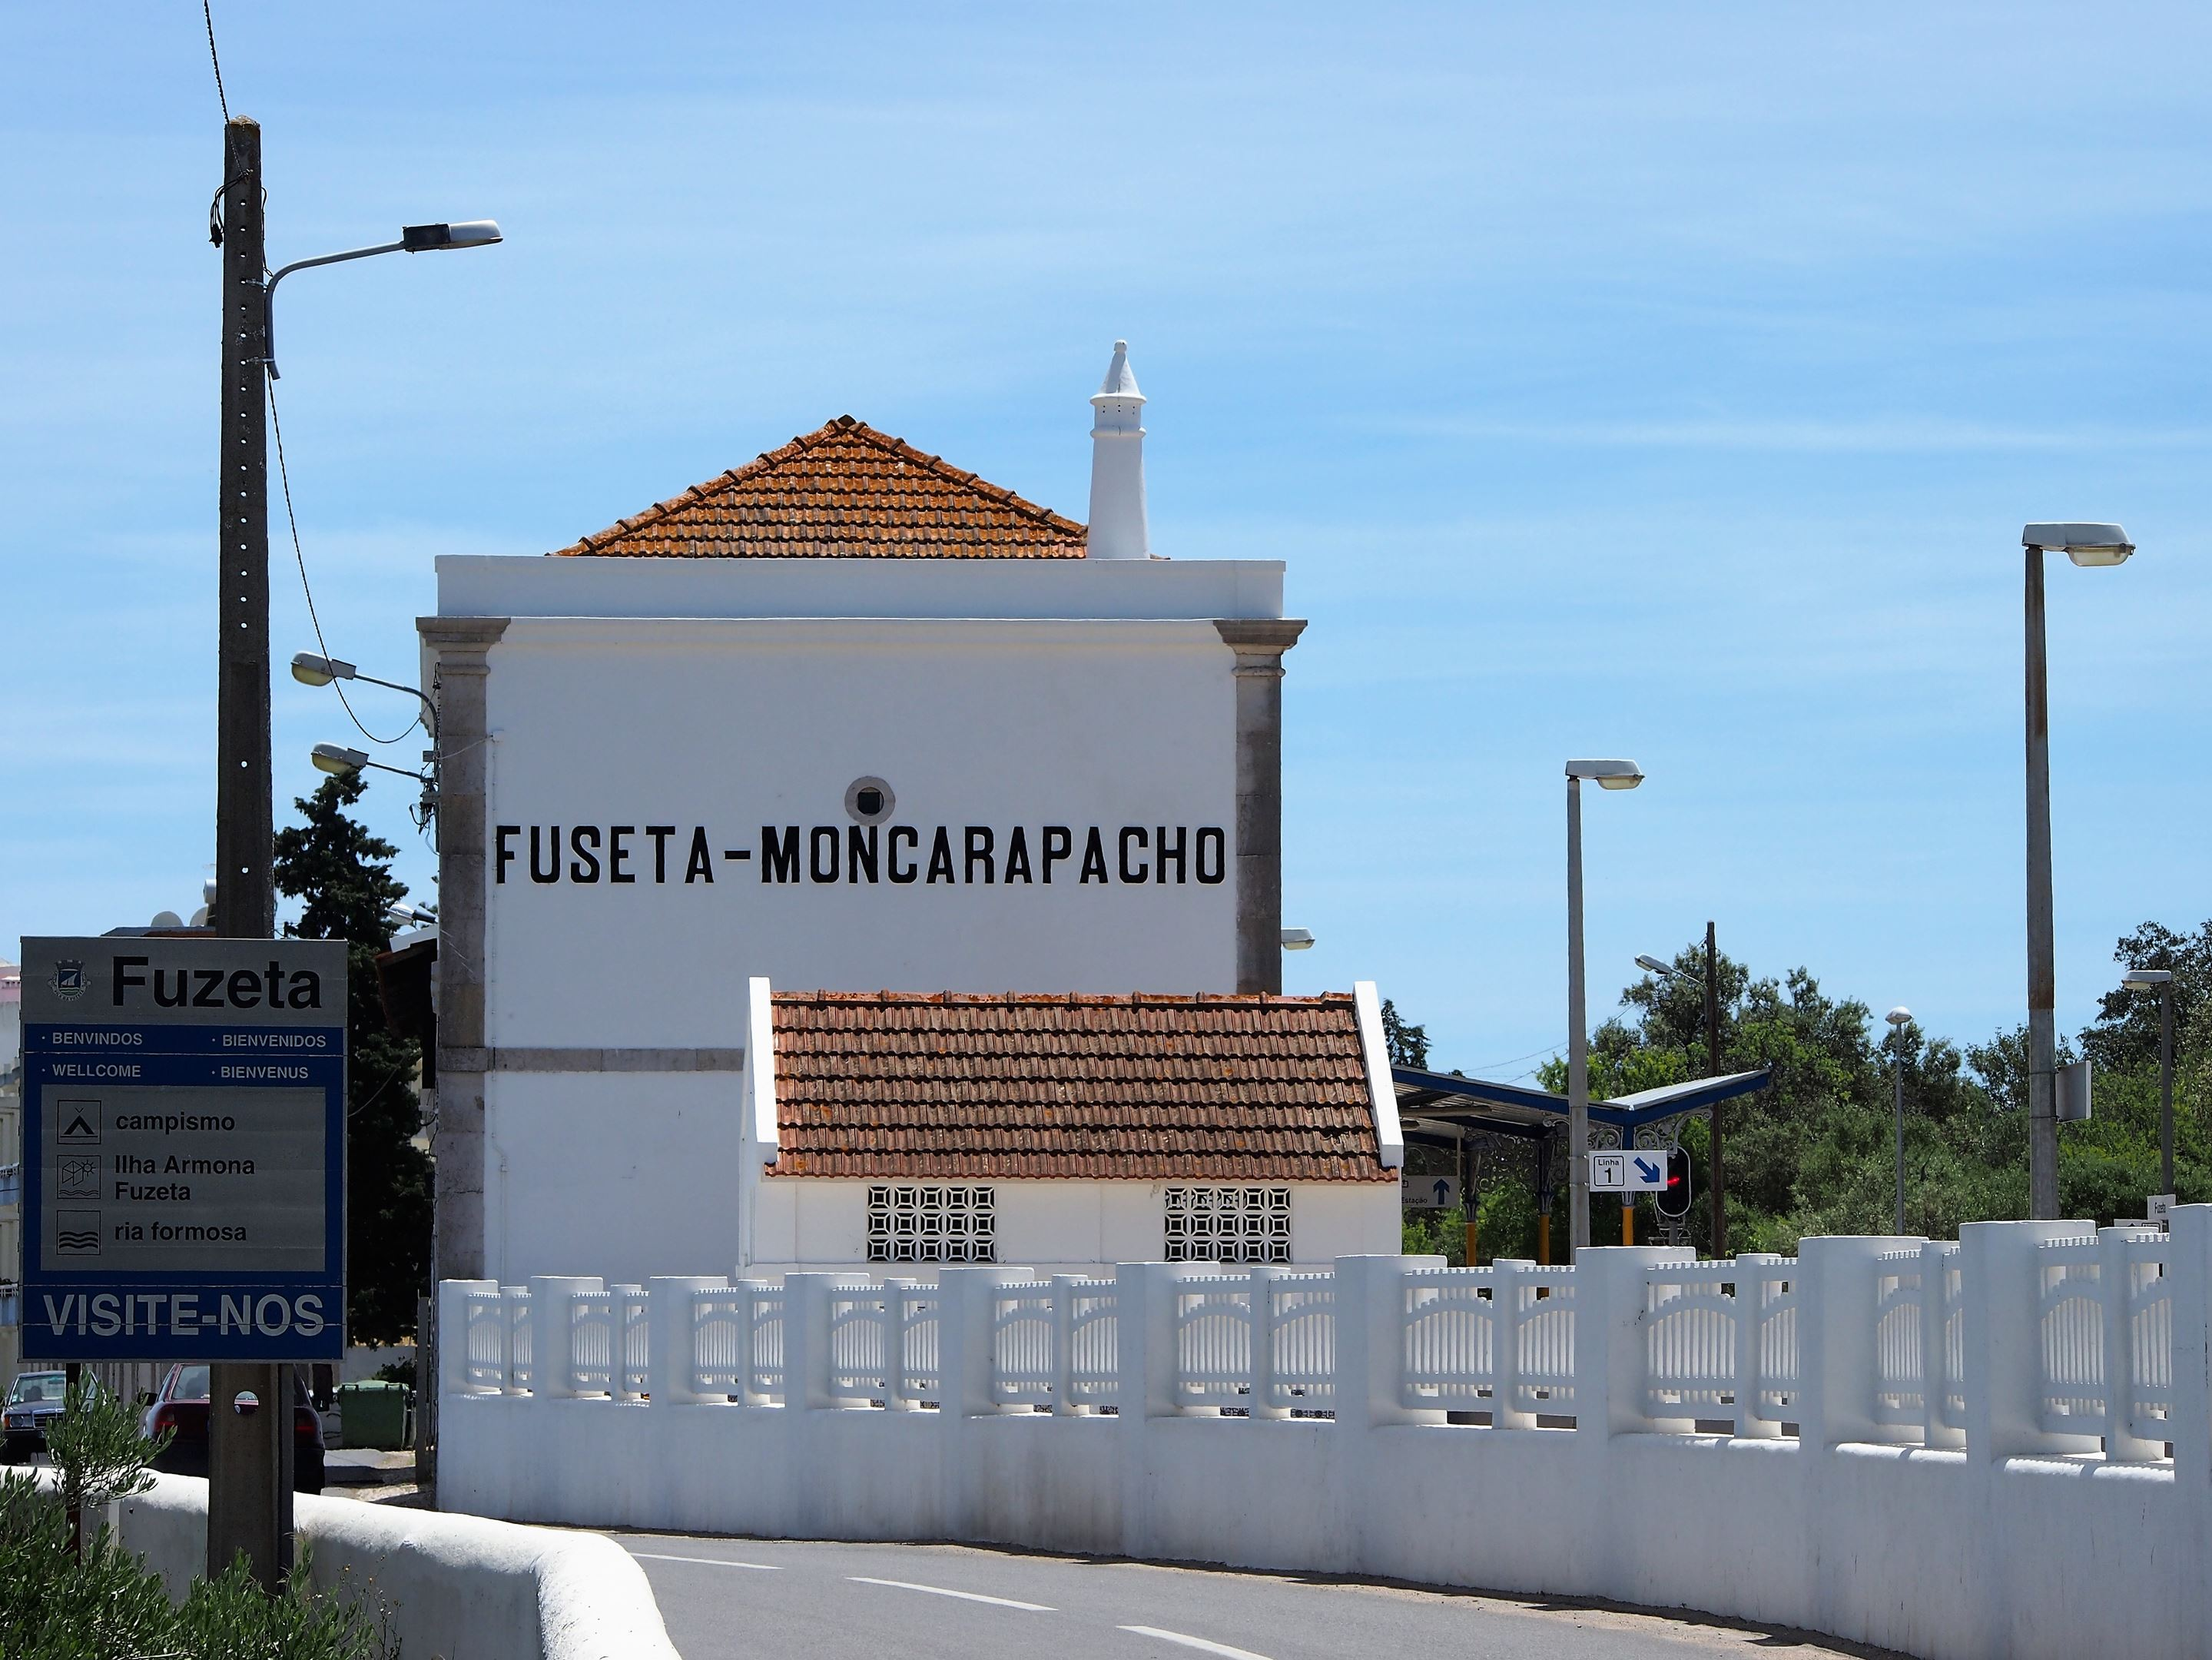 The train station at the entrance to Fuseta